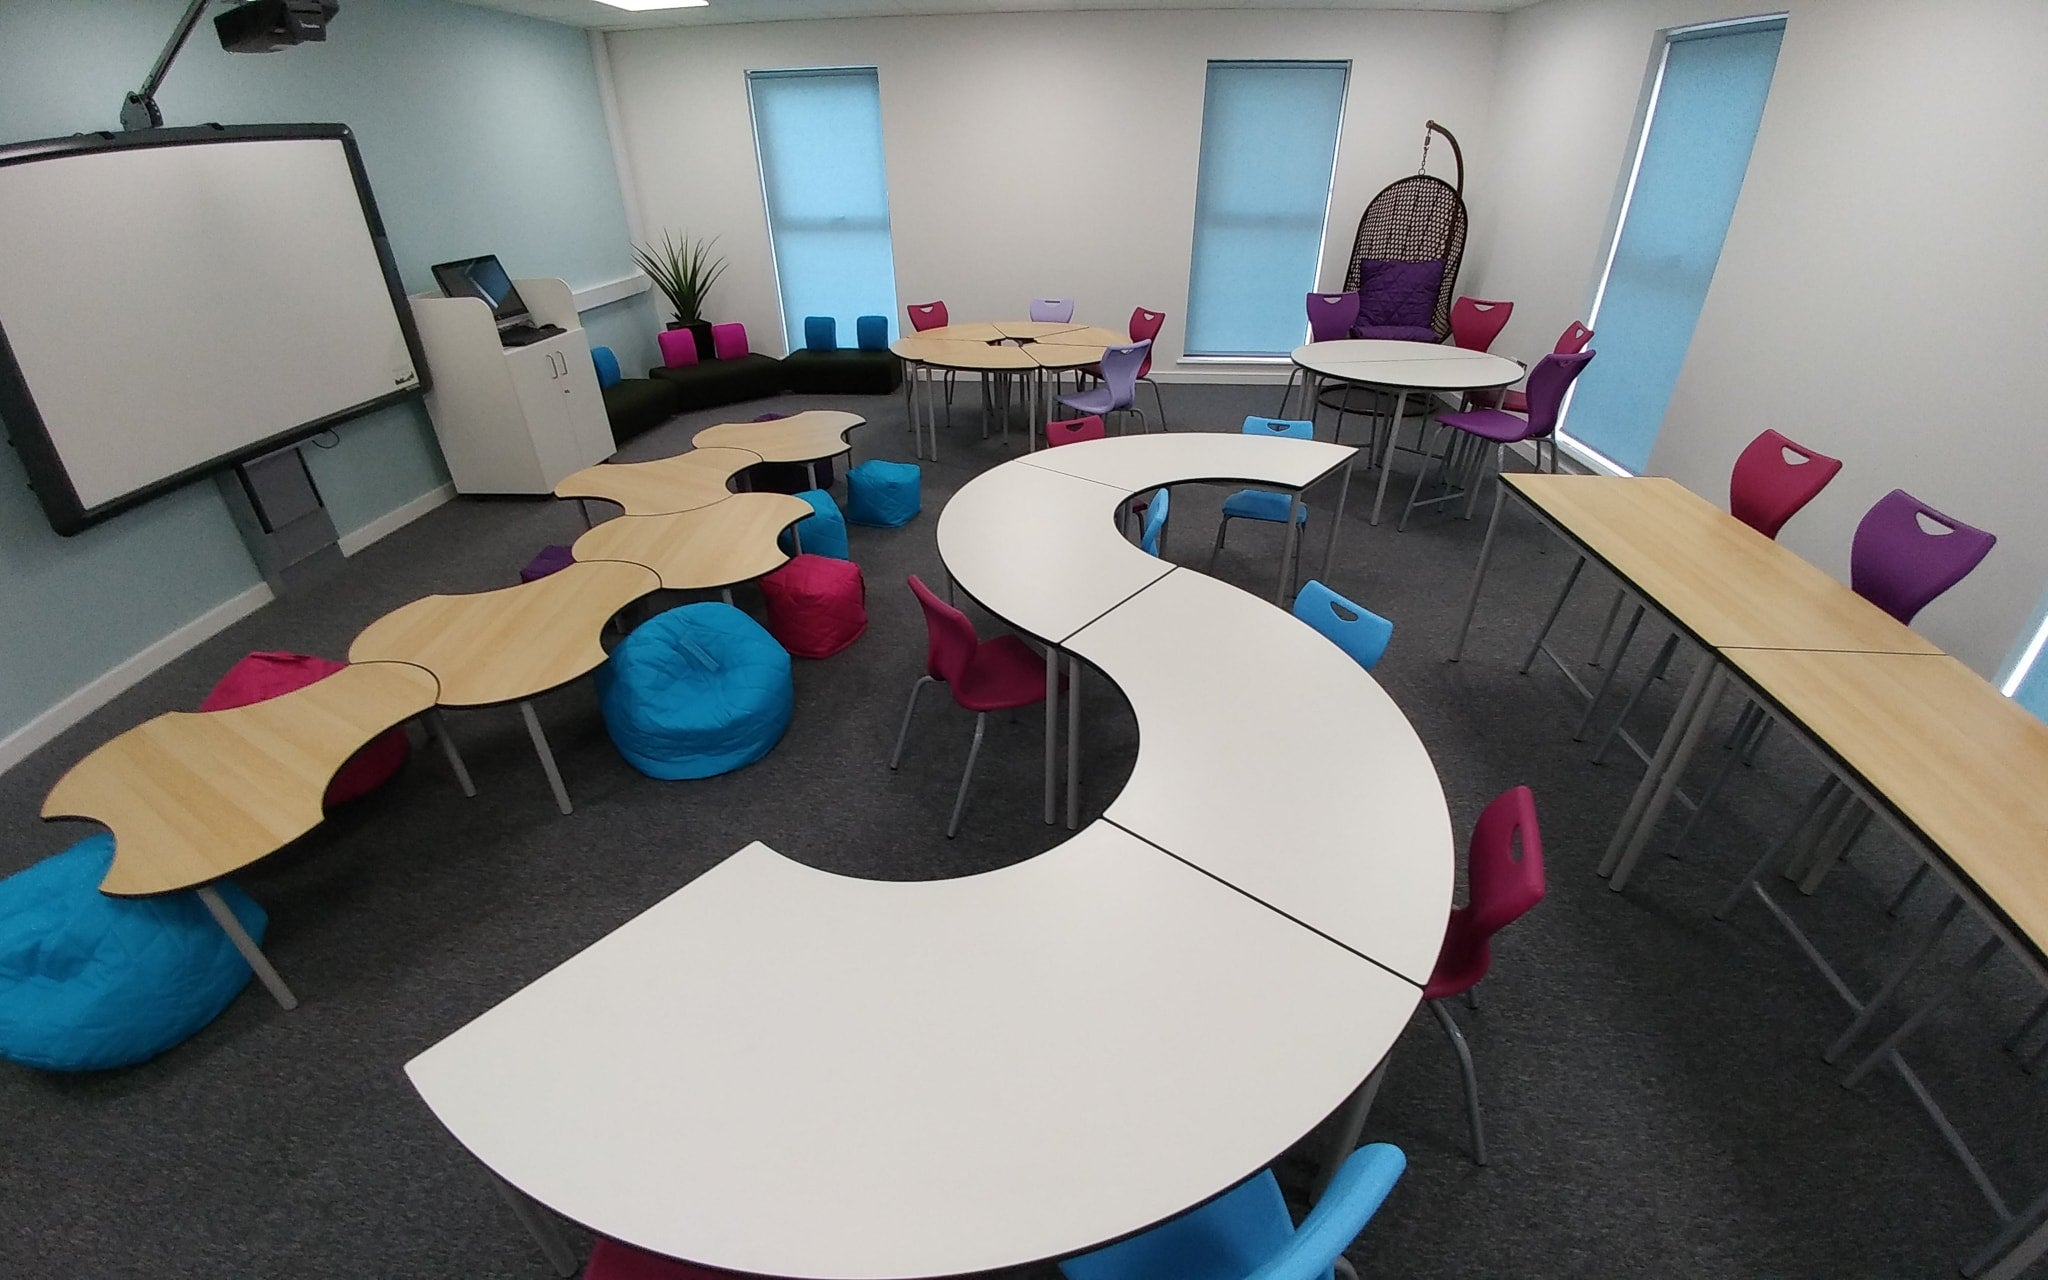 Classroom project one by Four Square Furniture